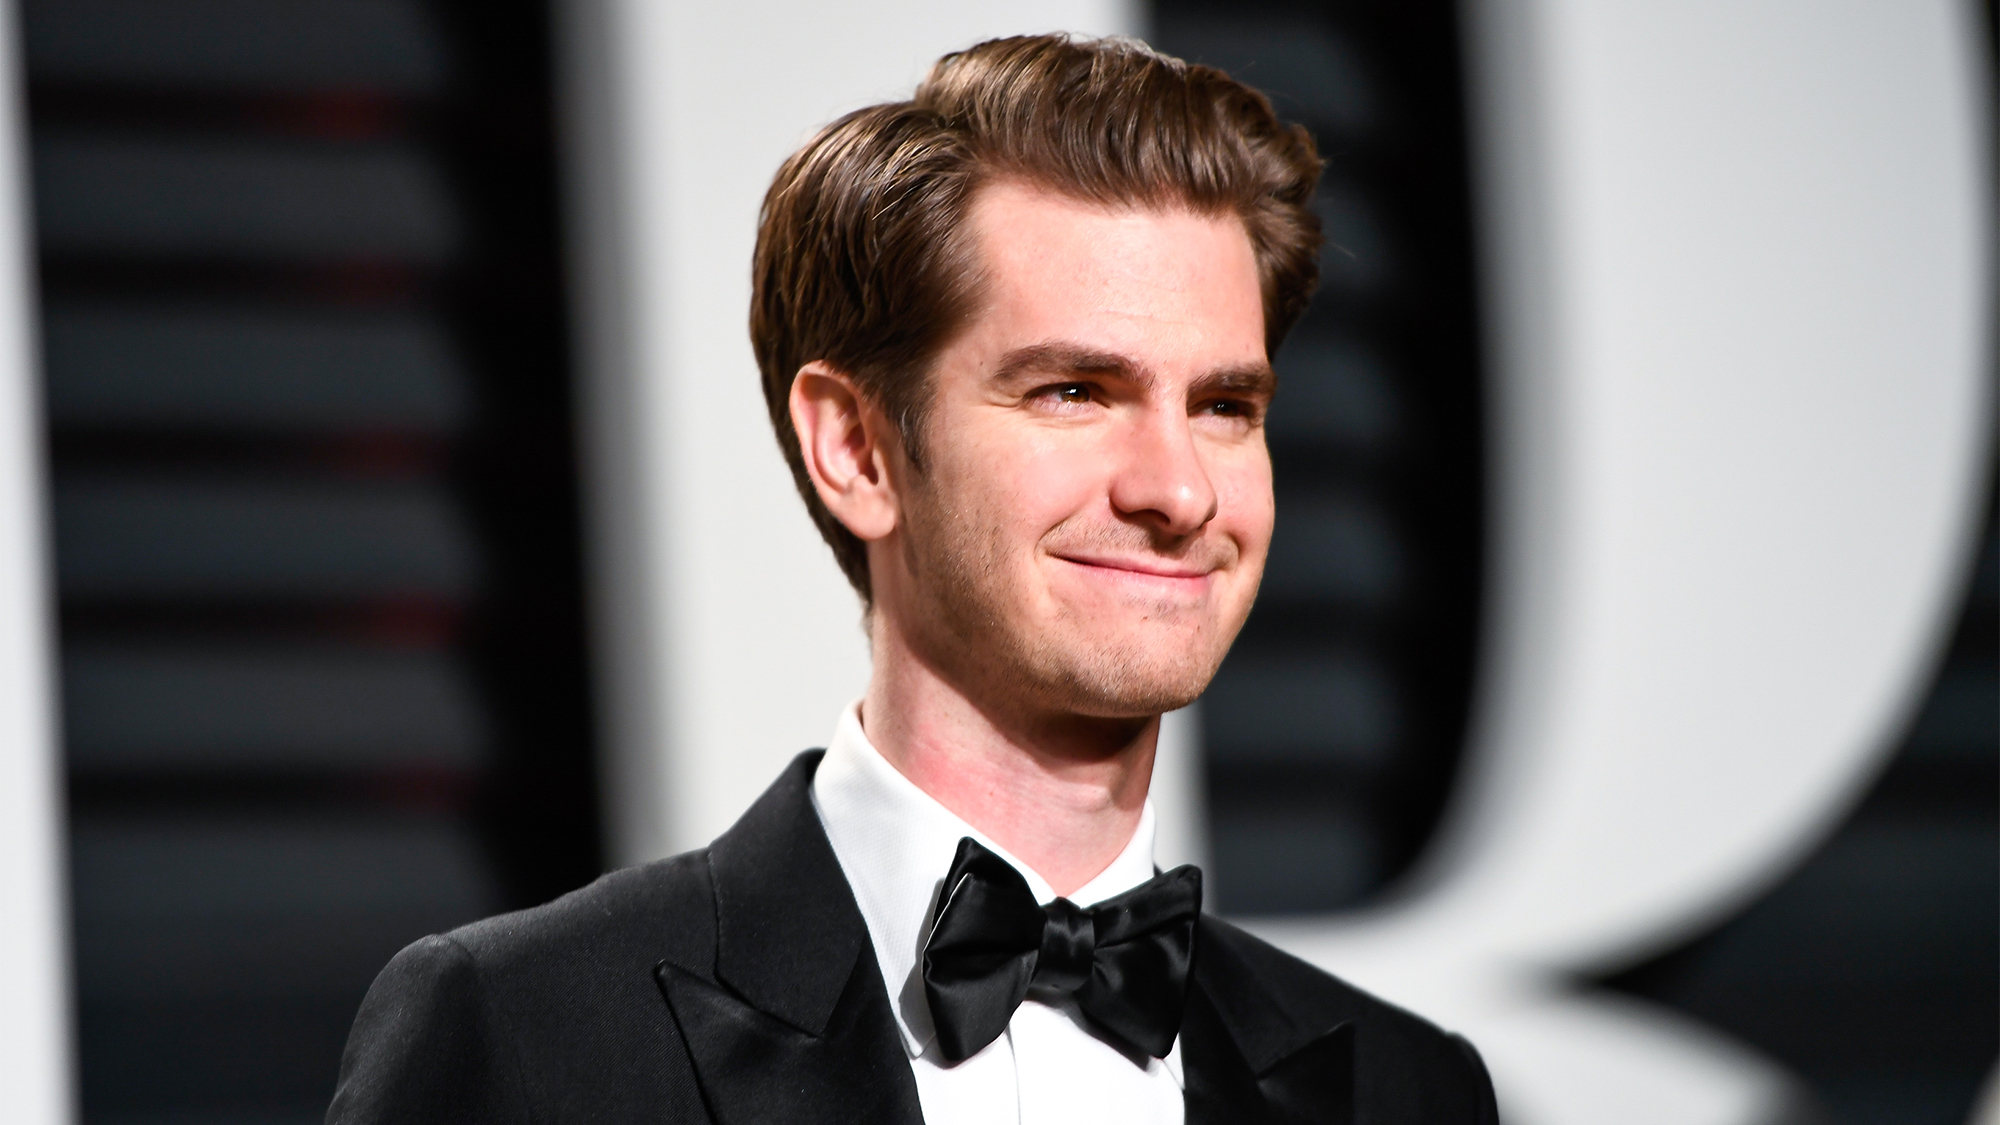 andrew garfield is facing criticism for claiming to be a